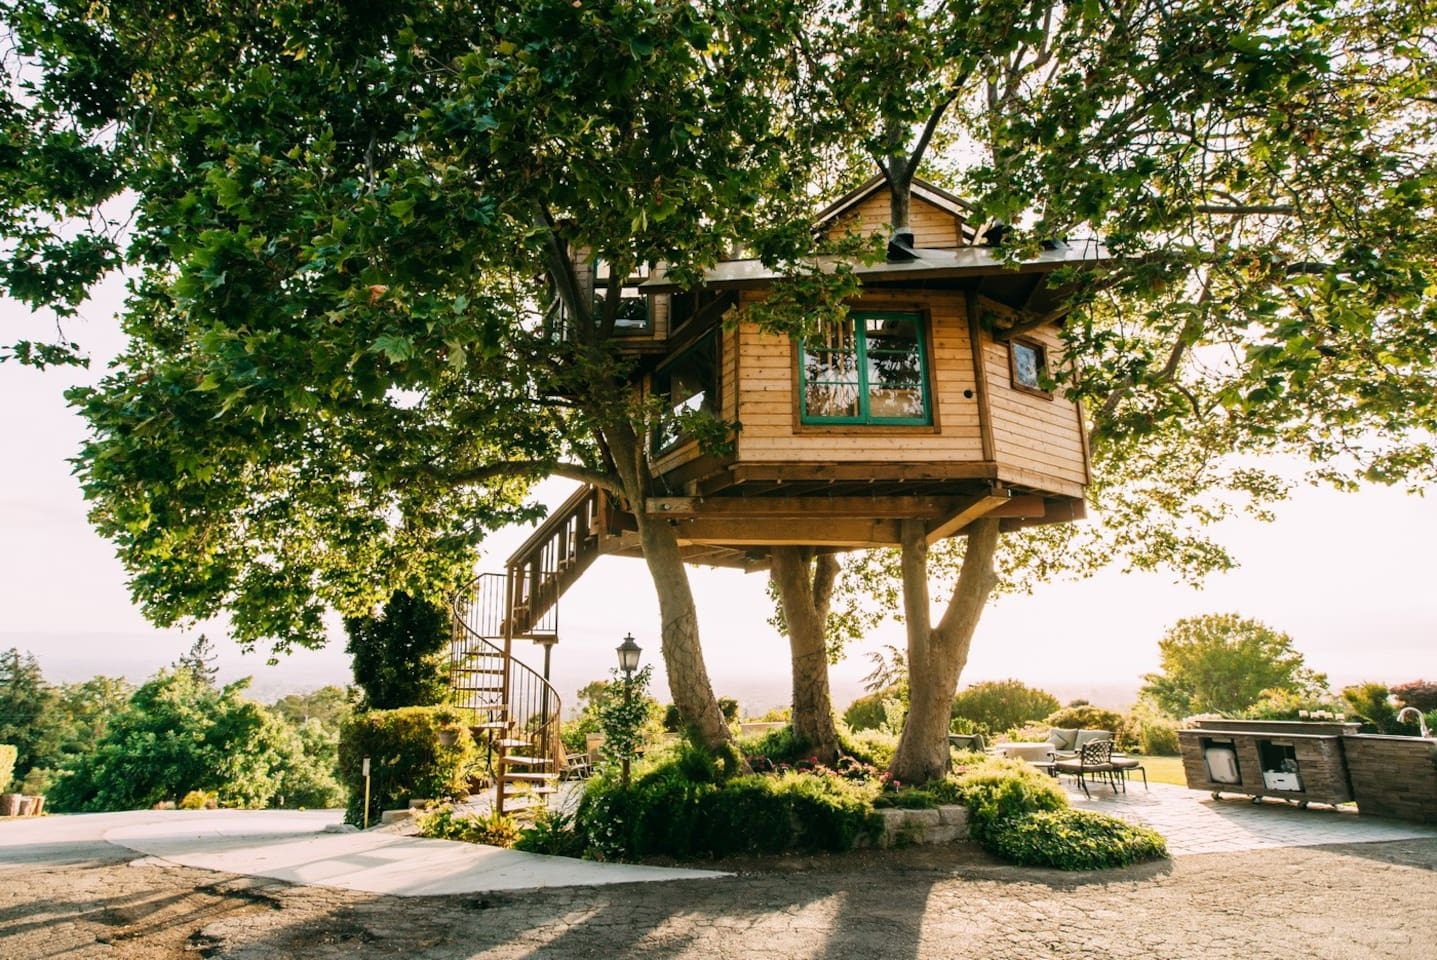 Treehouse with an amazing view of Silicon Valley